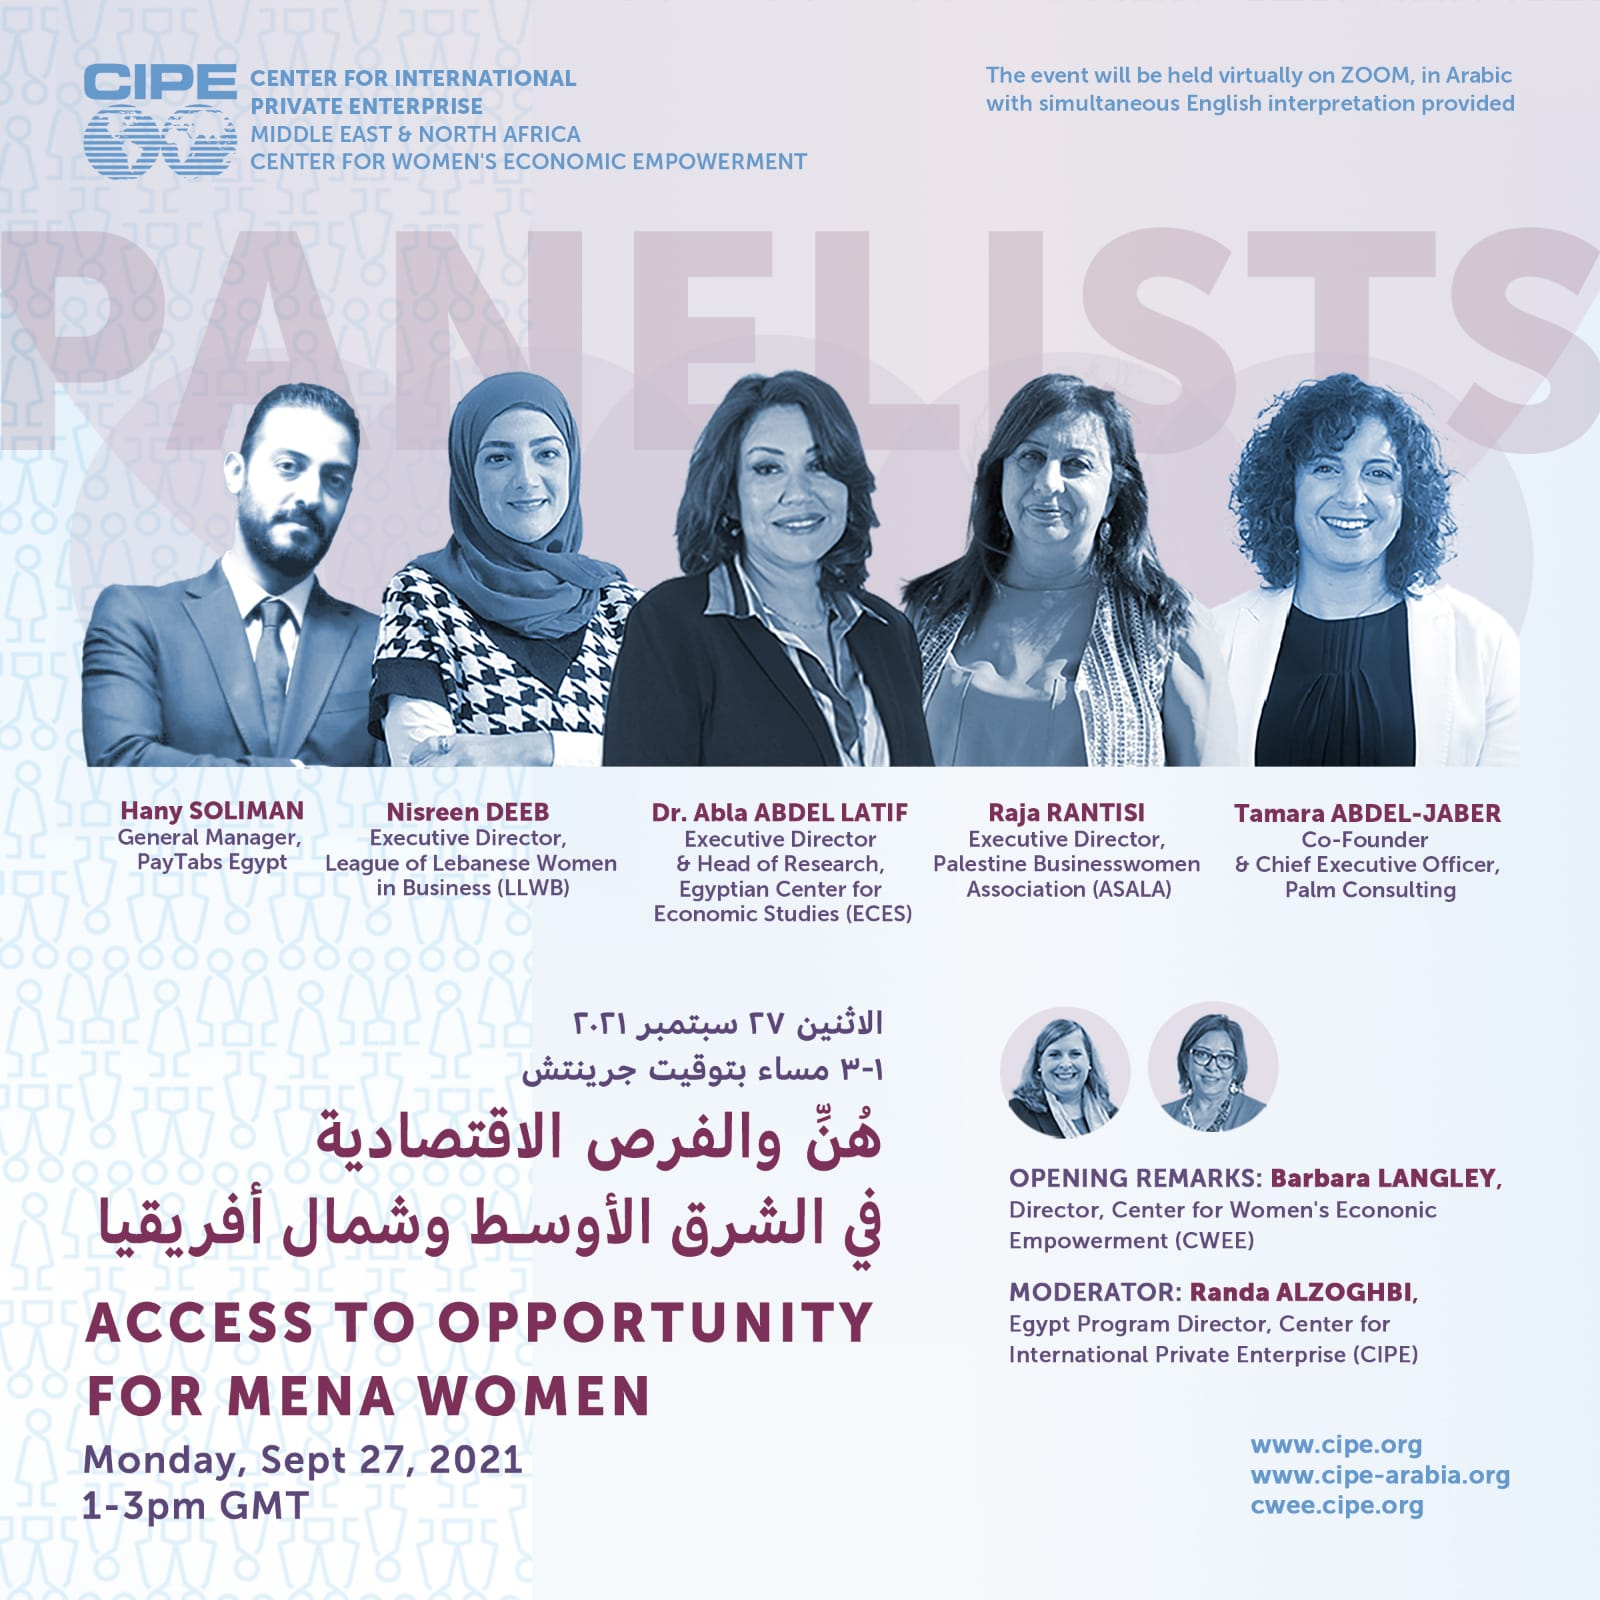 Access to opportunity for MENA women